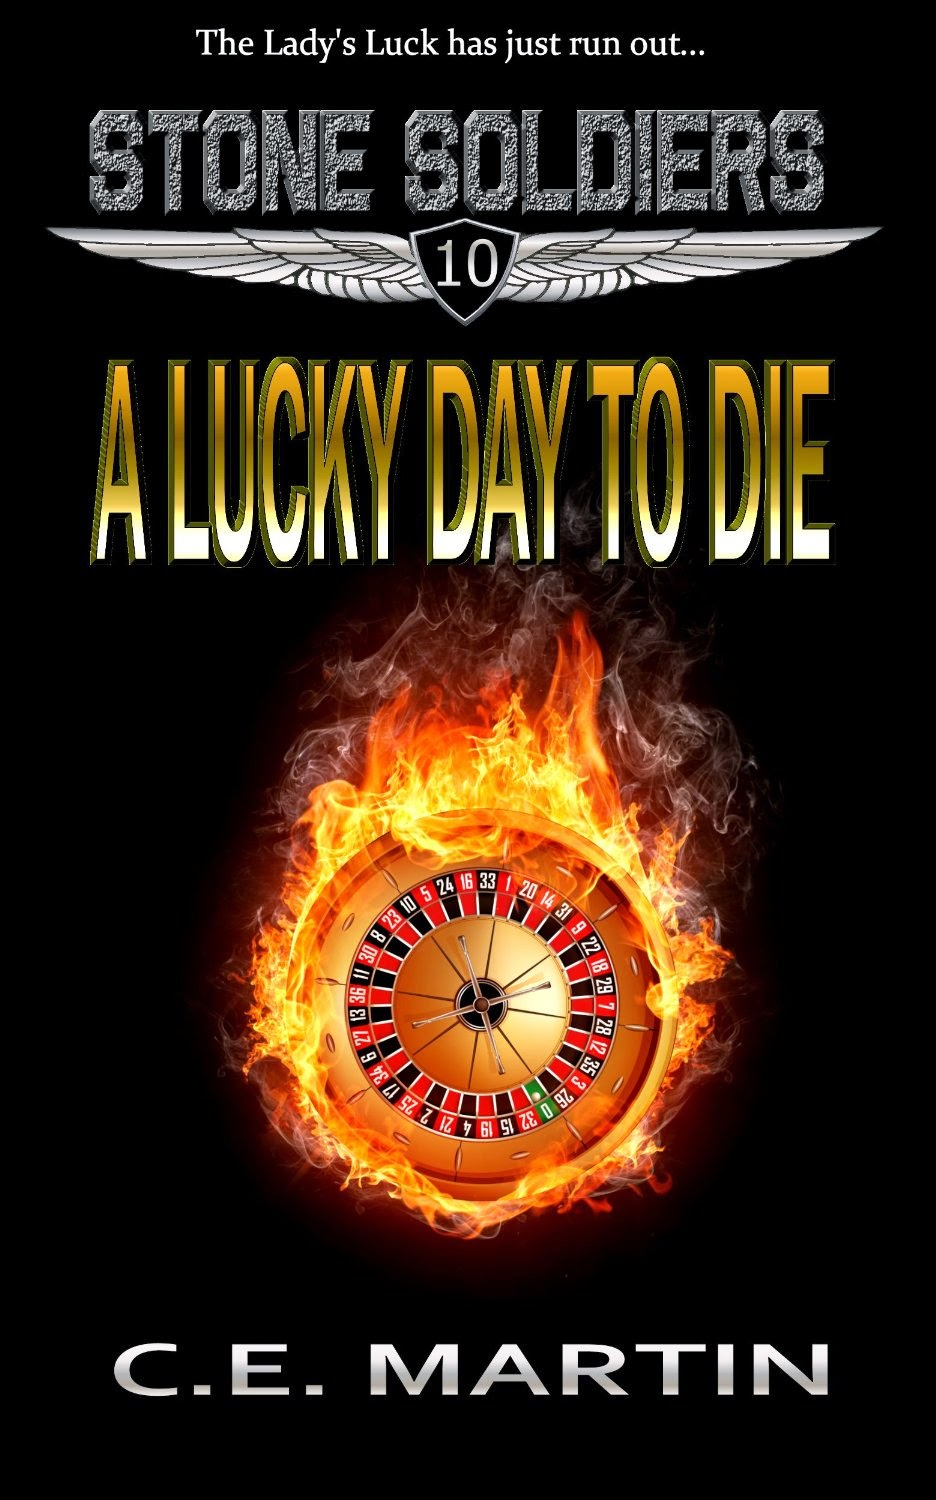 A Lucky Day To Die by C.E. Martin